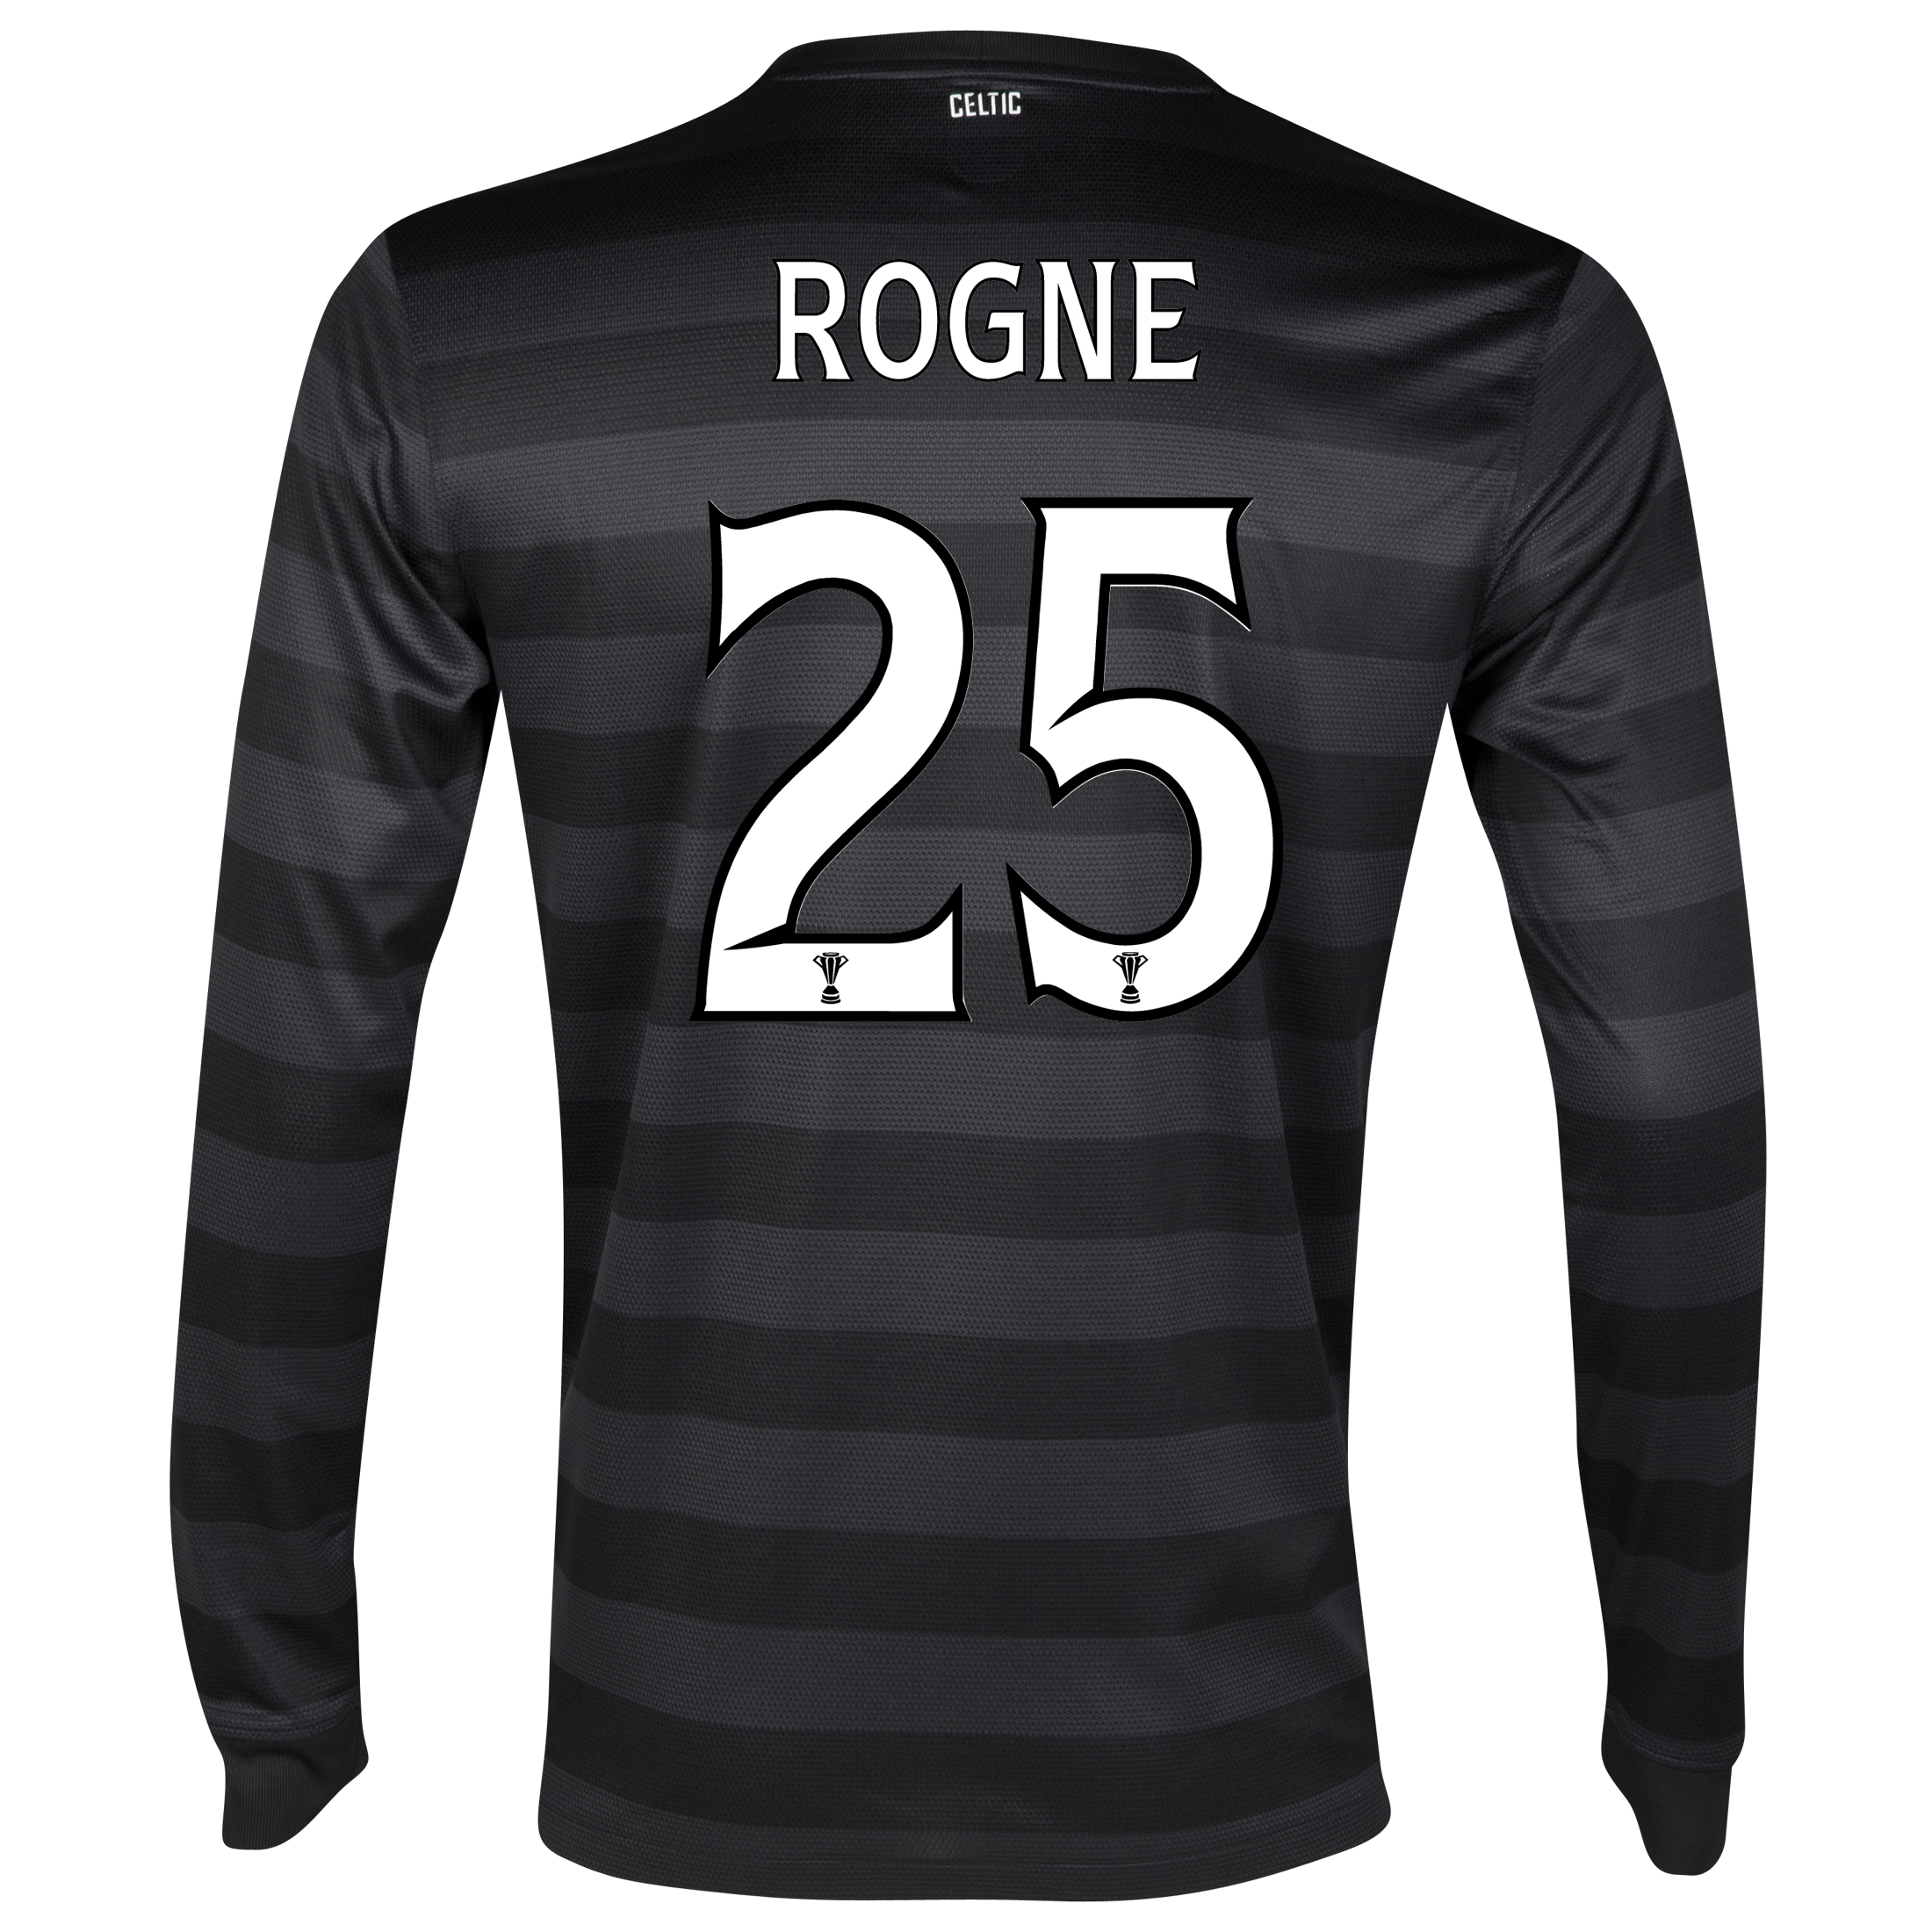 Celtic Away Shirt 2012/13 - Long Sleeved no sponsor with Rogne 25 printing